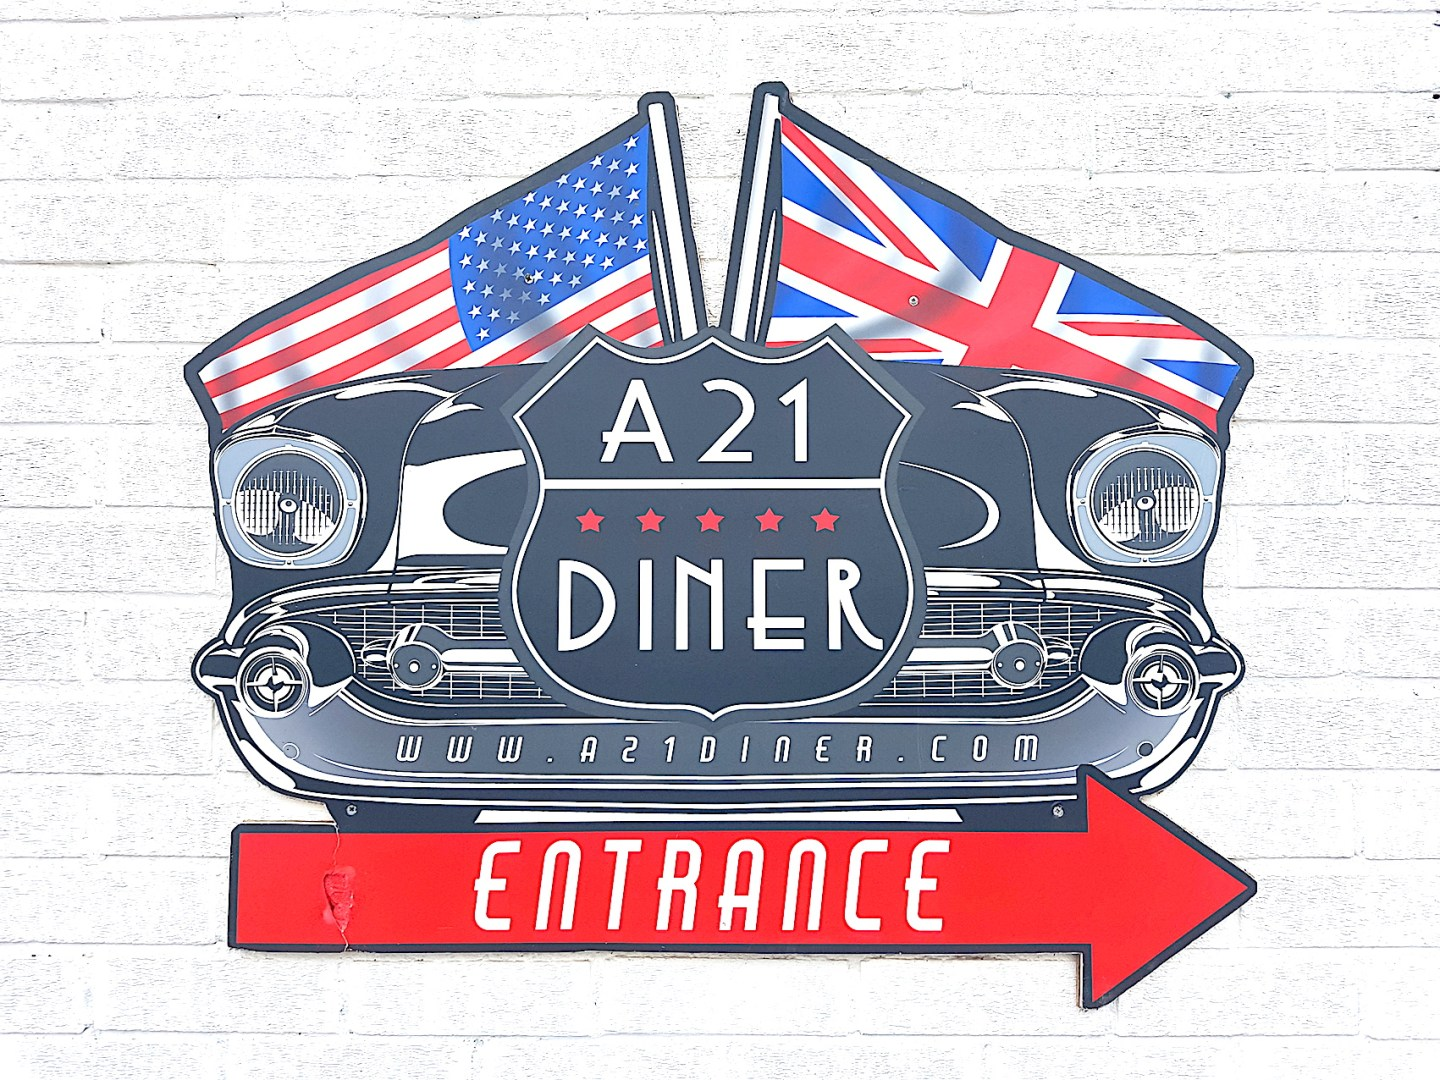 The A21 Diner – A Seriously Good Breakfast In a little taste of America